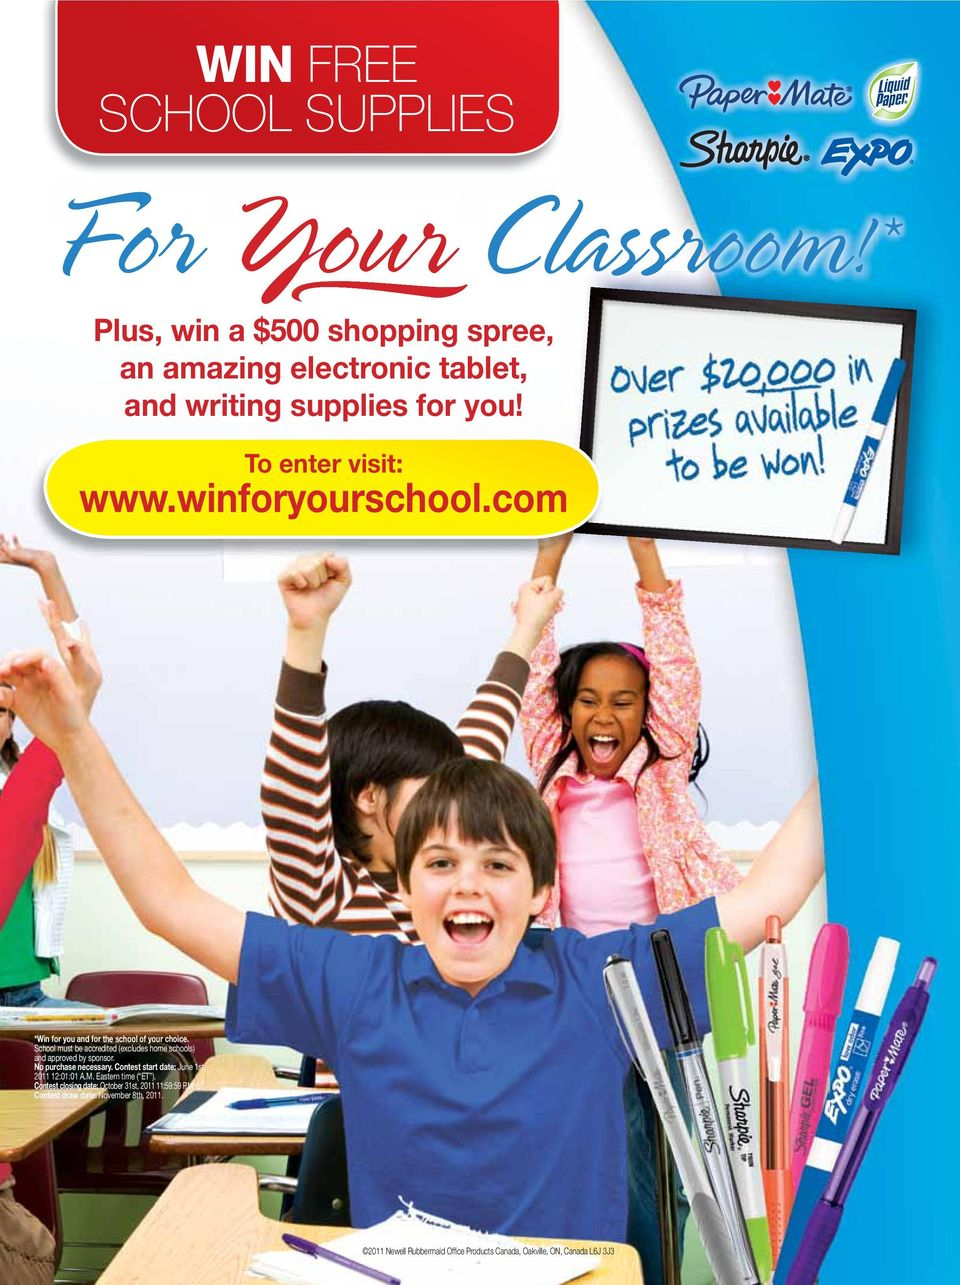 School must be accredited (excludes home schools) and approved by sponsor. No purchase necessary. Contest start date: June 1st, 2011 12:01:01 A.M.